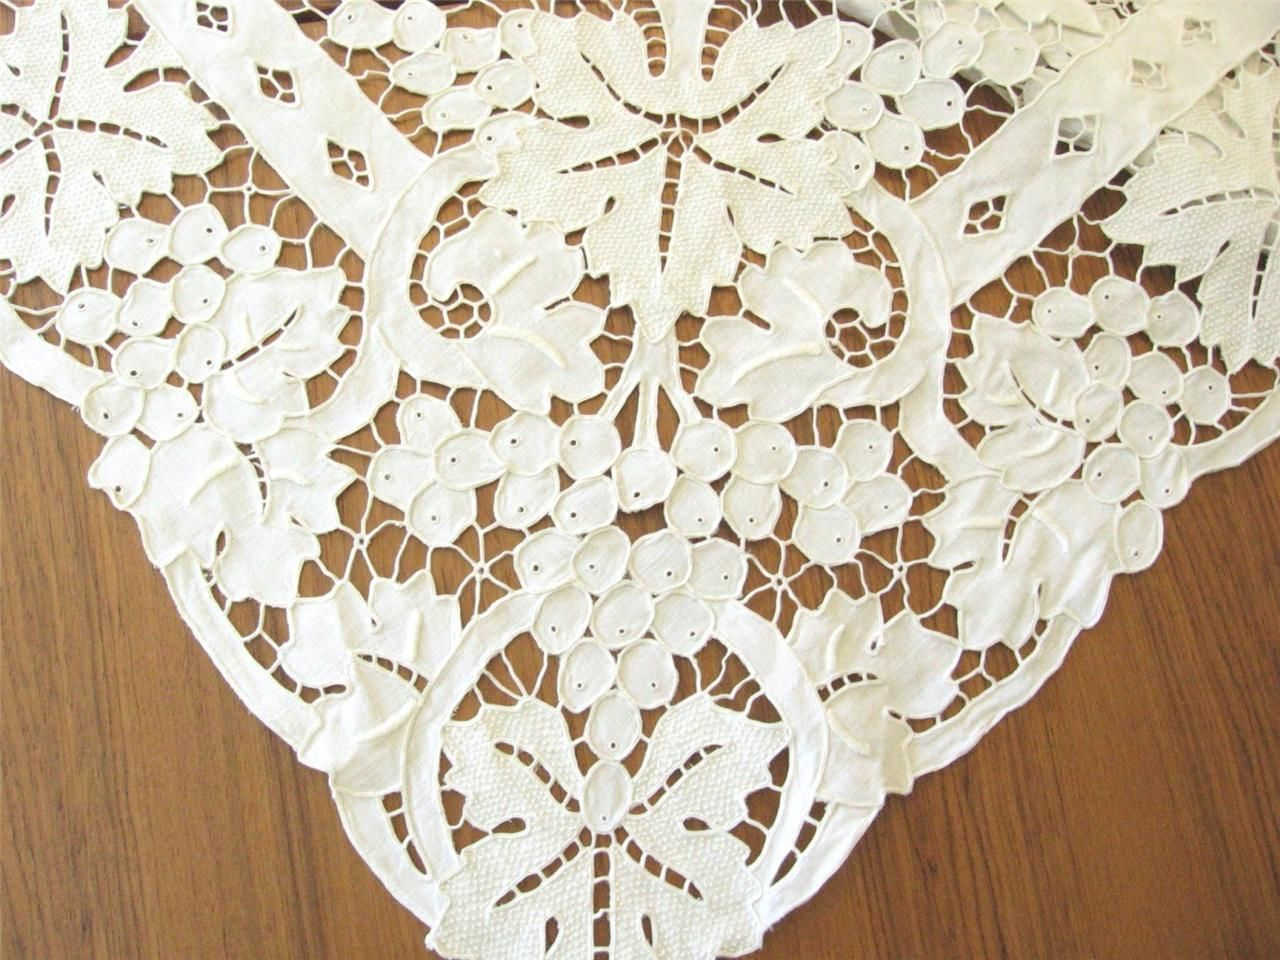 Outline embroidery designs for tablecloth - Incredible Vintage Madeira Embroidery All Cutwork Tablecloth 12 Napkins 68x100